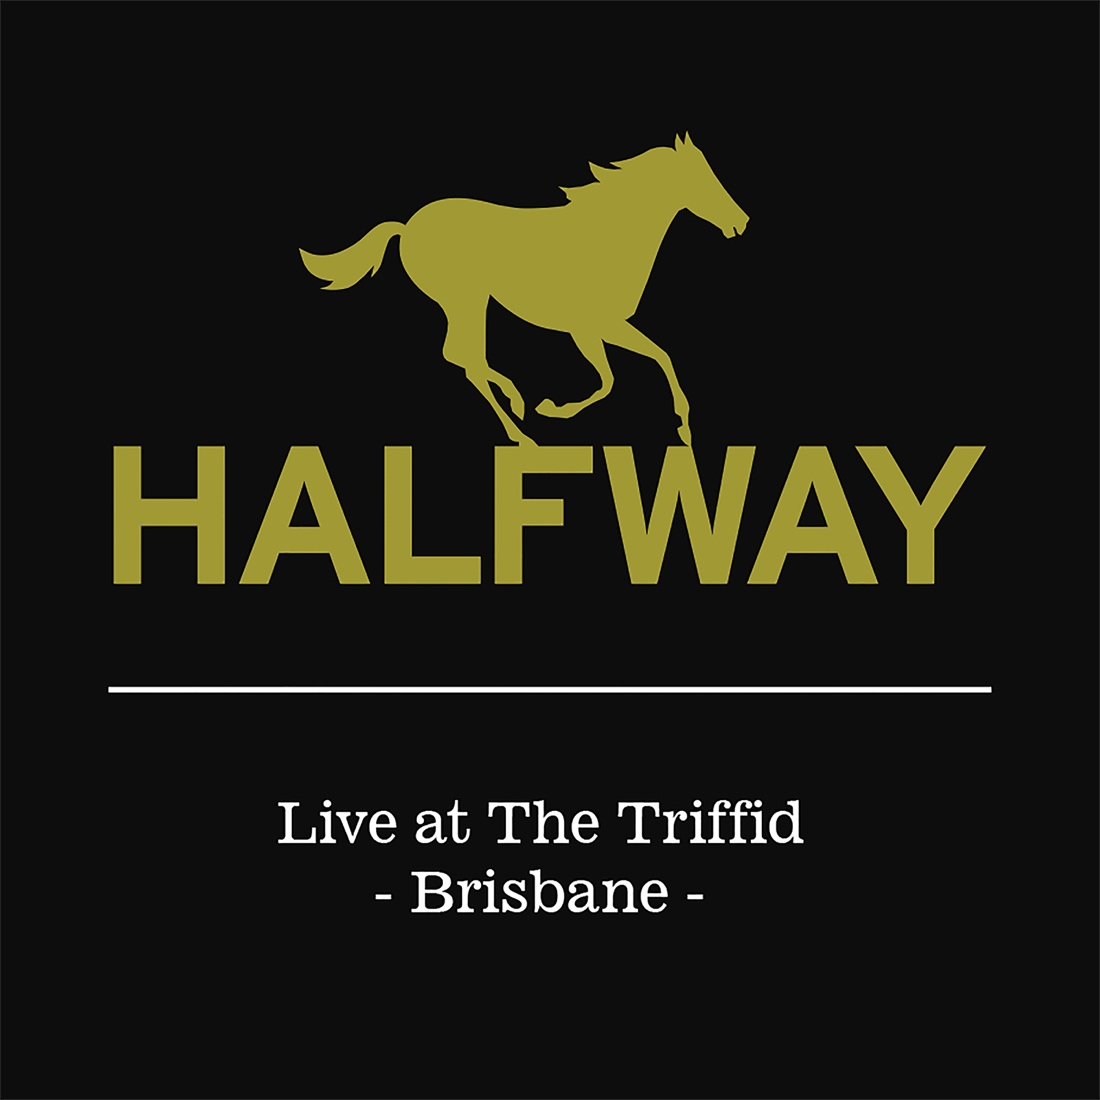 Halfway Live at The Triffid